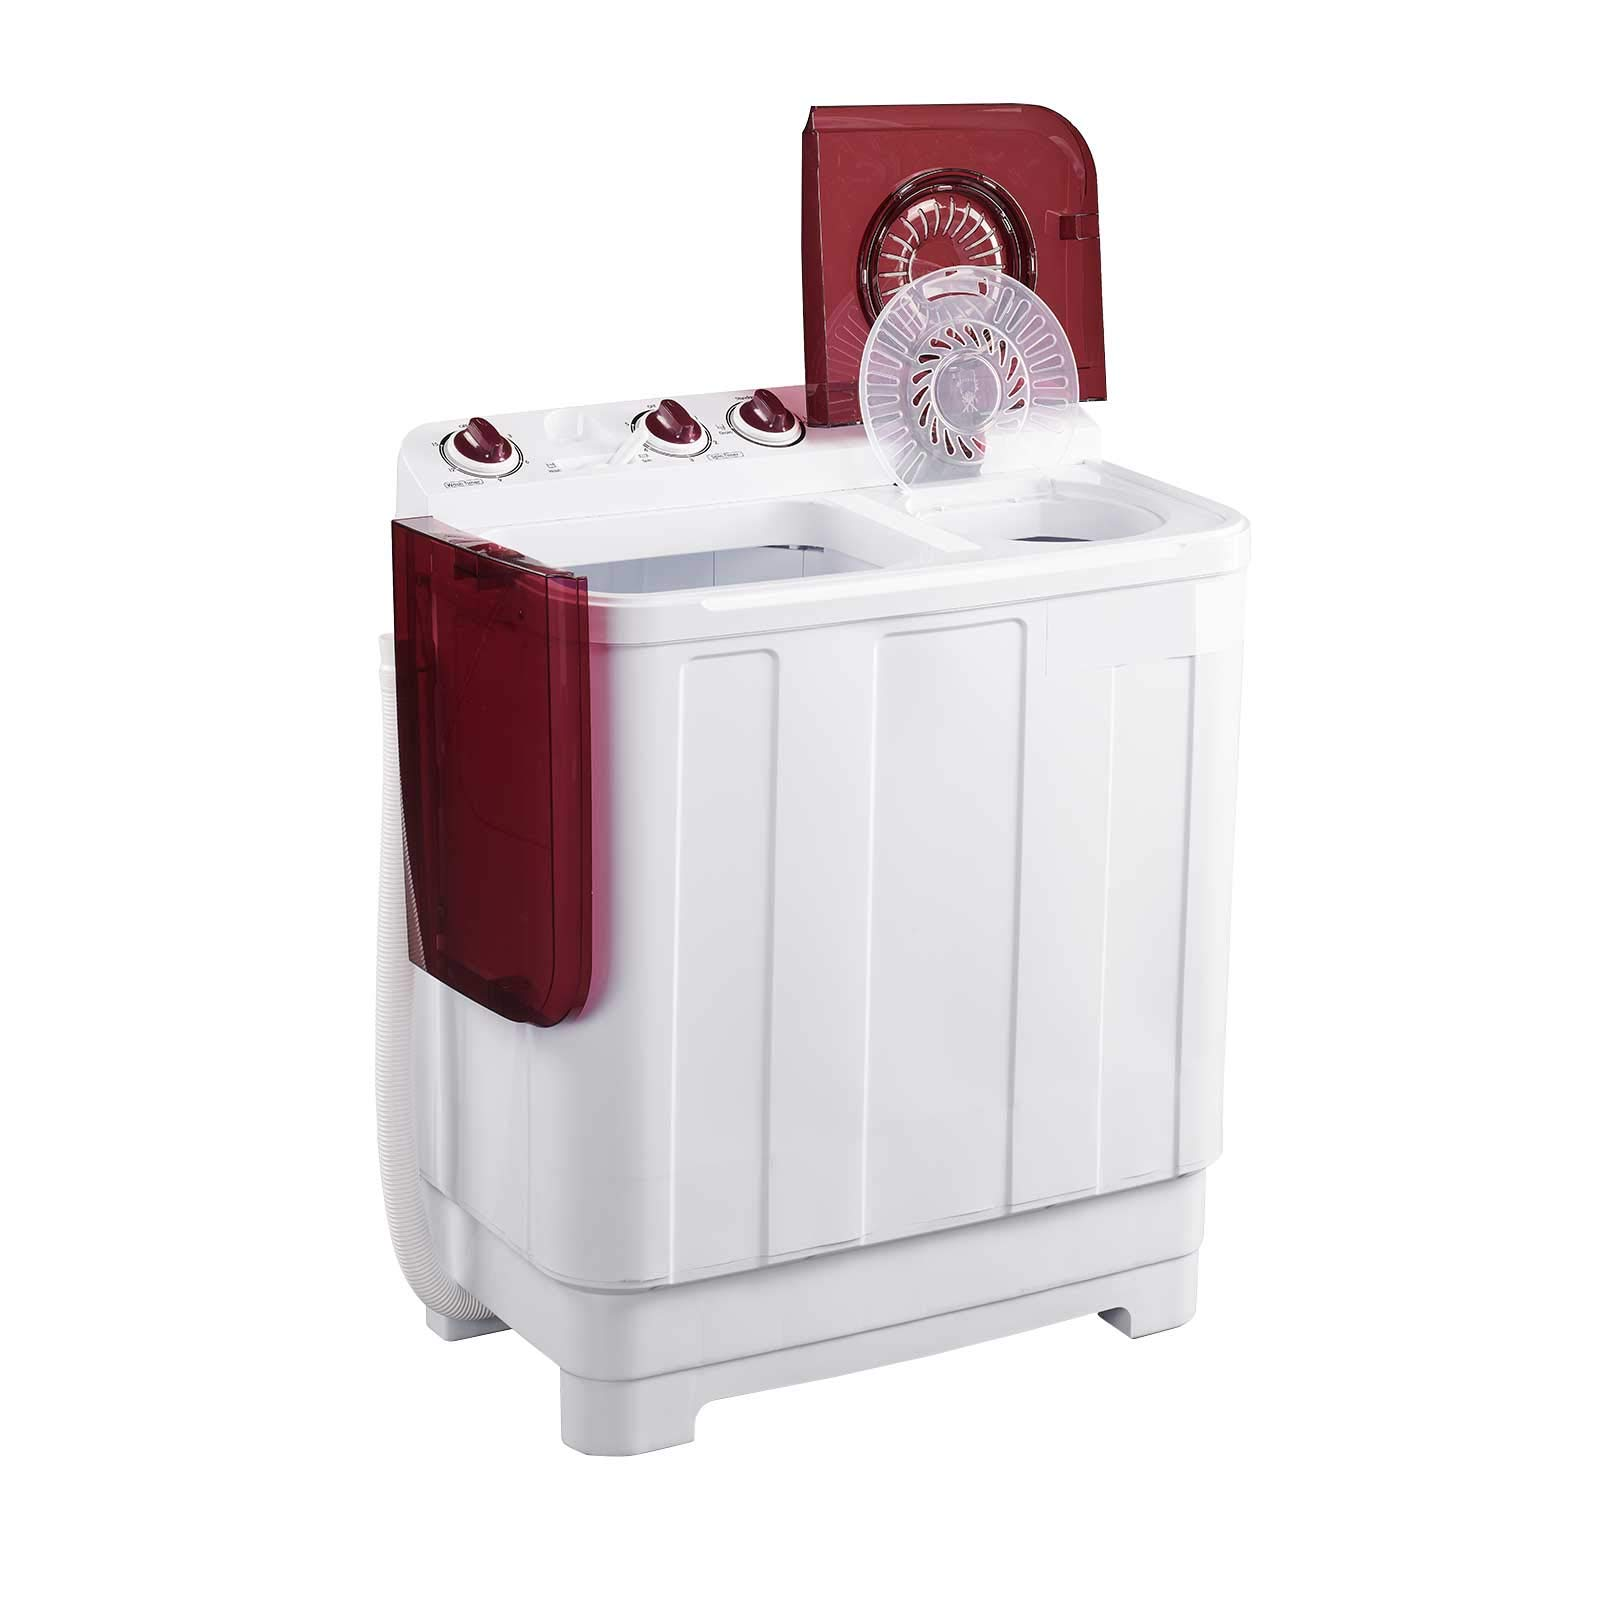 Frifer Portable Twin Tub Washing Machine, Compact Mini Washer and Spin Dryer Combo For Camping, Apartments, Dorms, College Rooms, RVs and more (25LB/white+red)